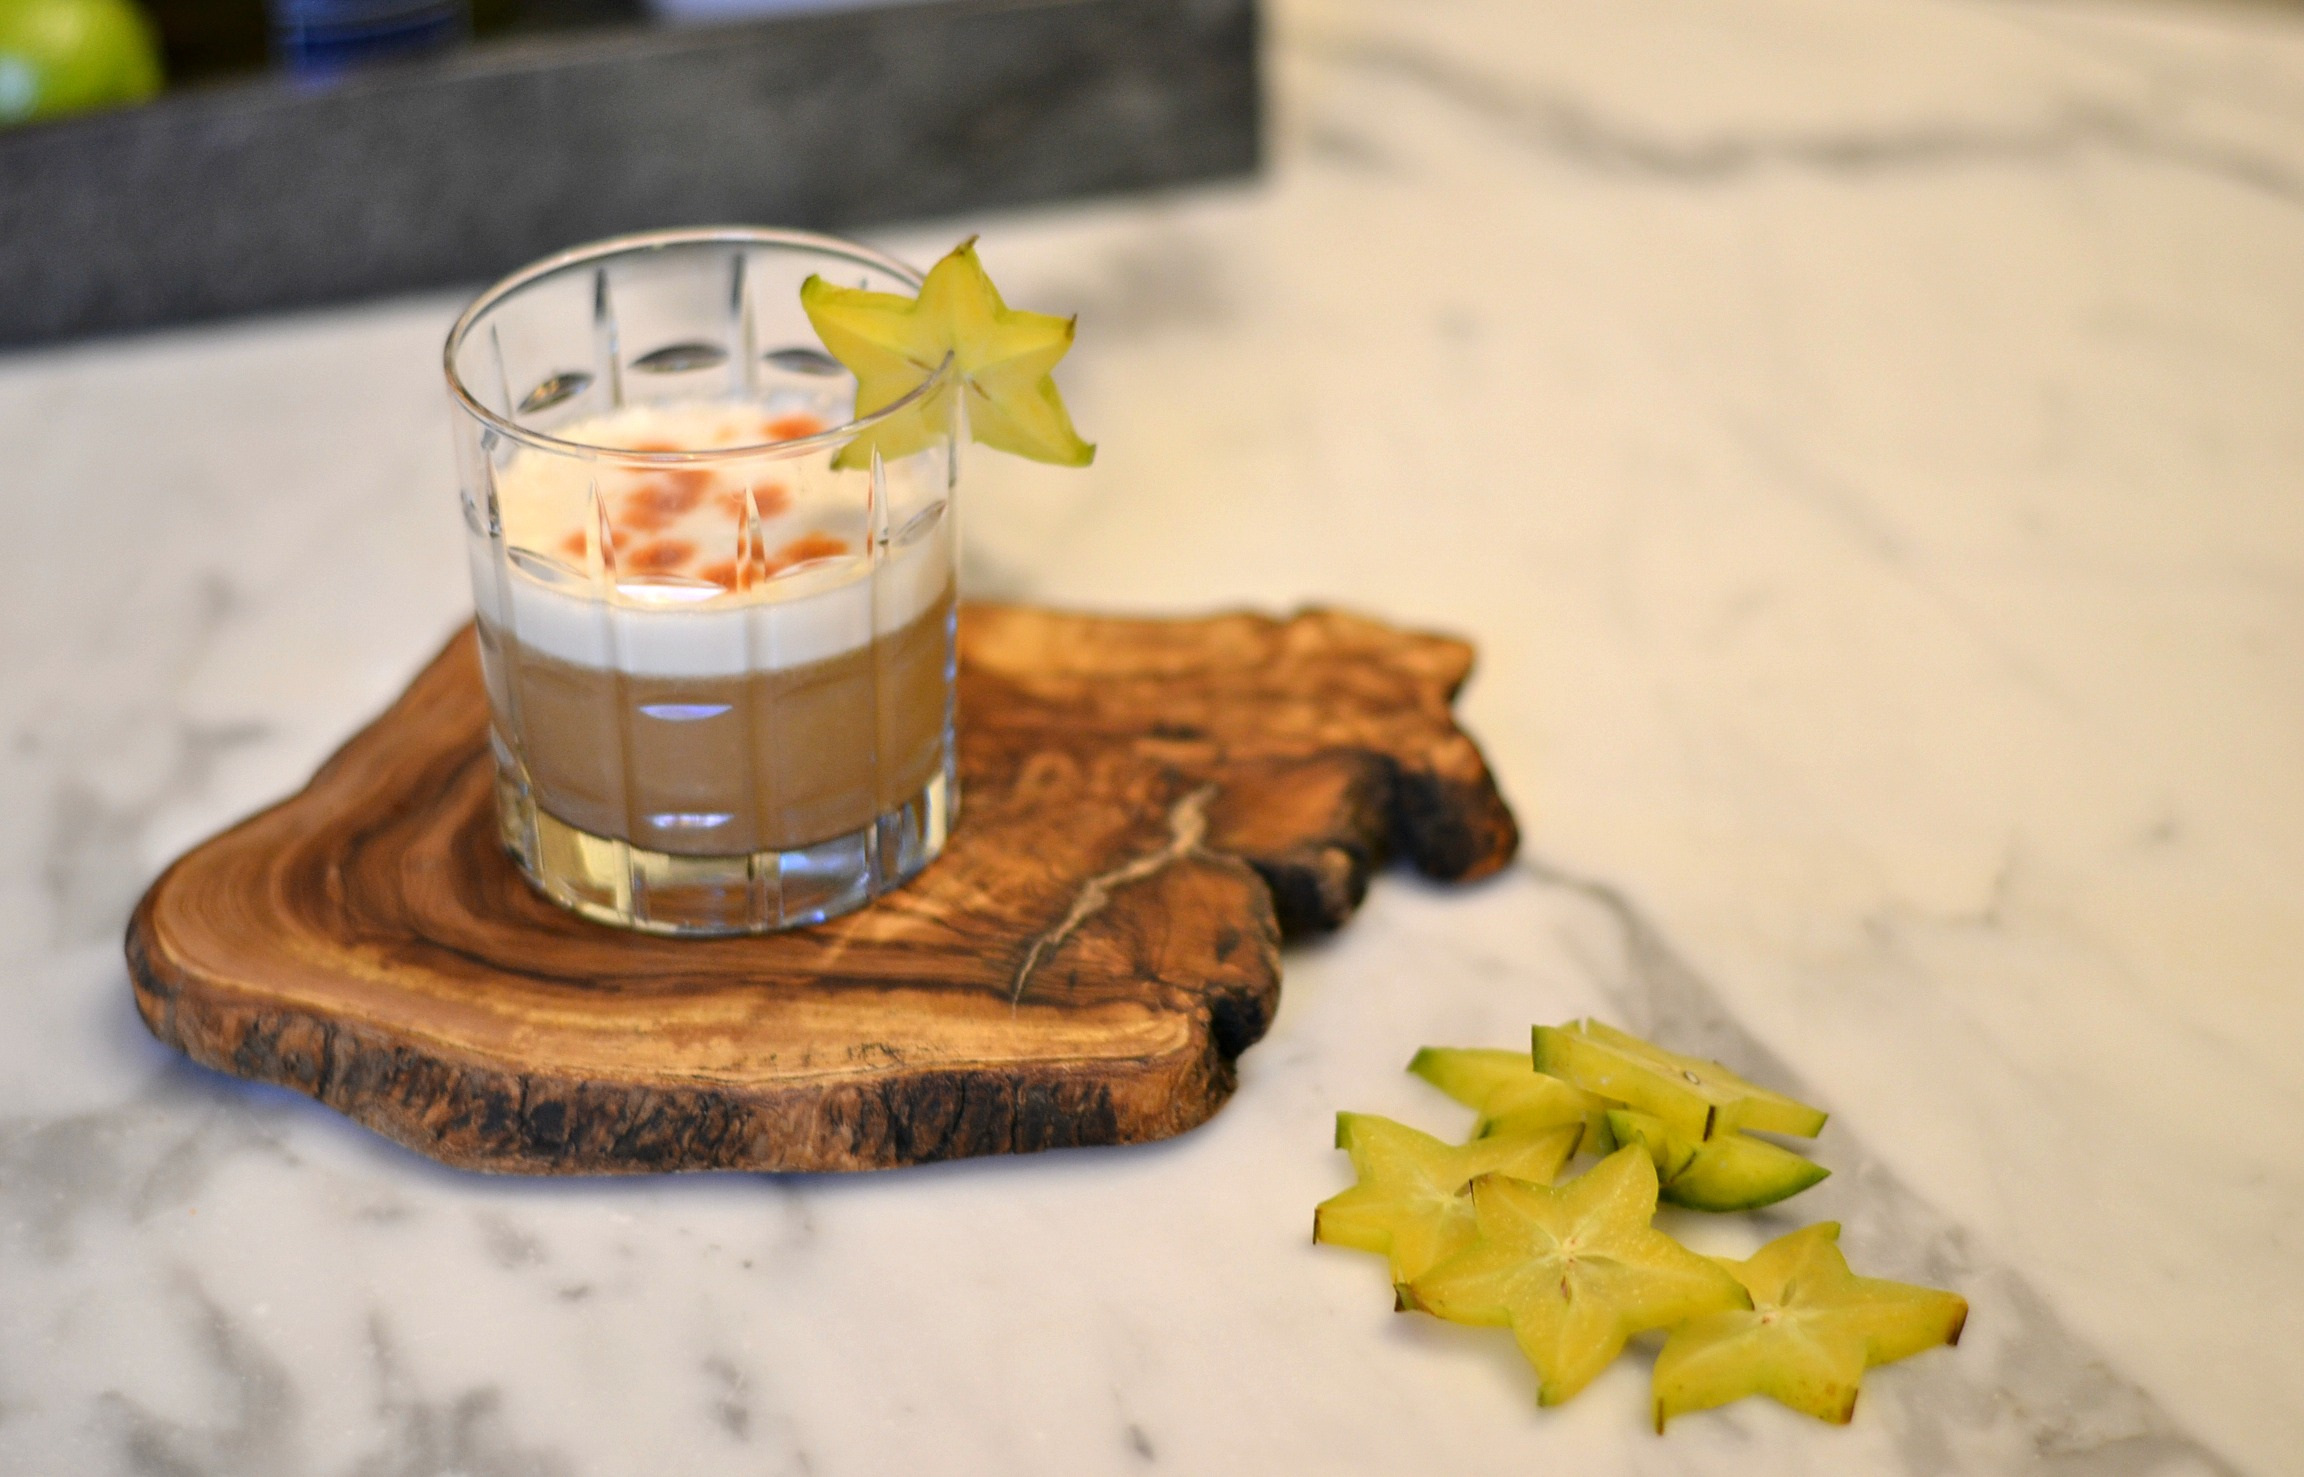 Pisco sour cocktail garnished with a slice of starfruit